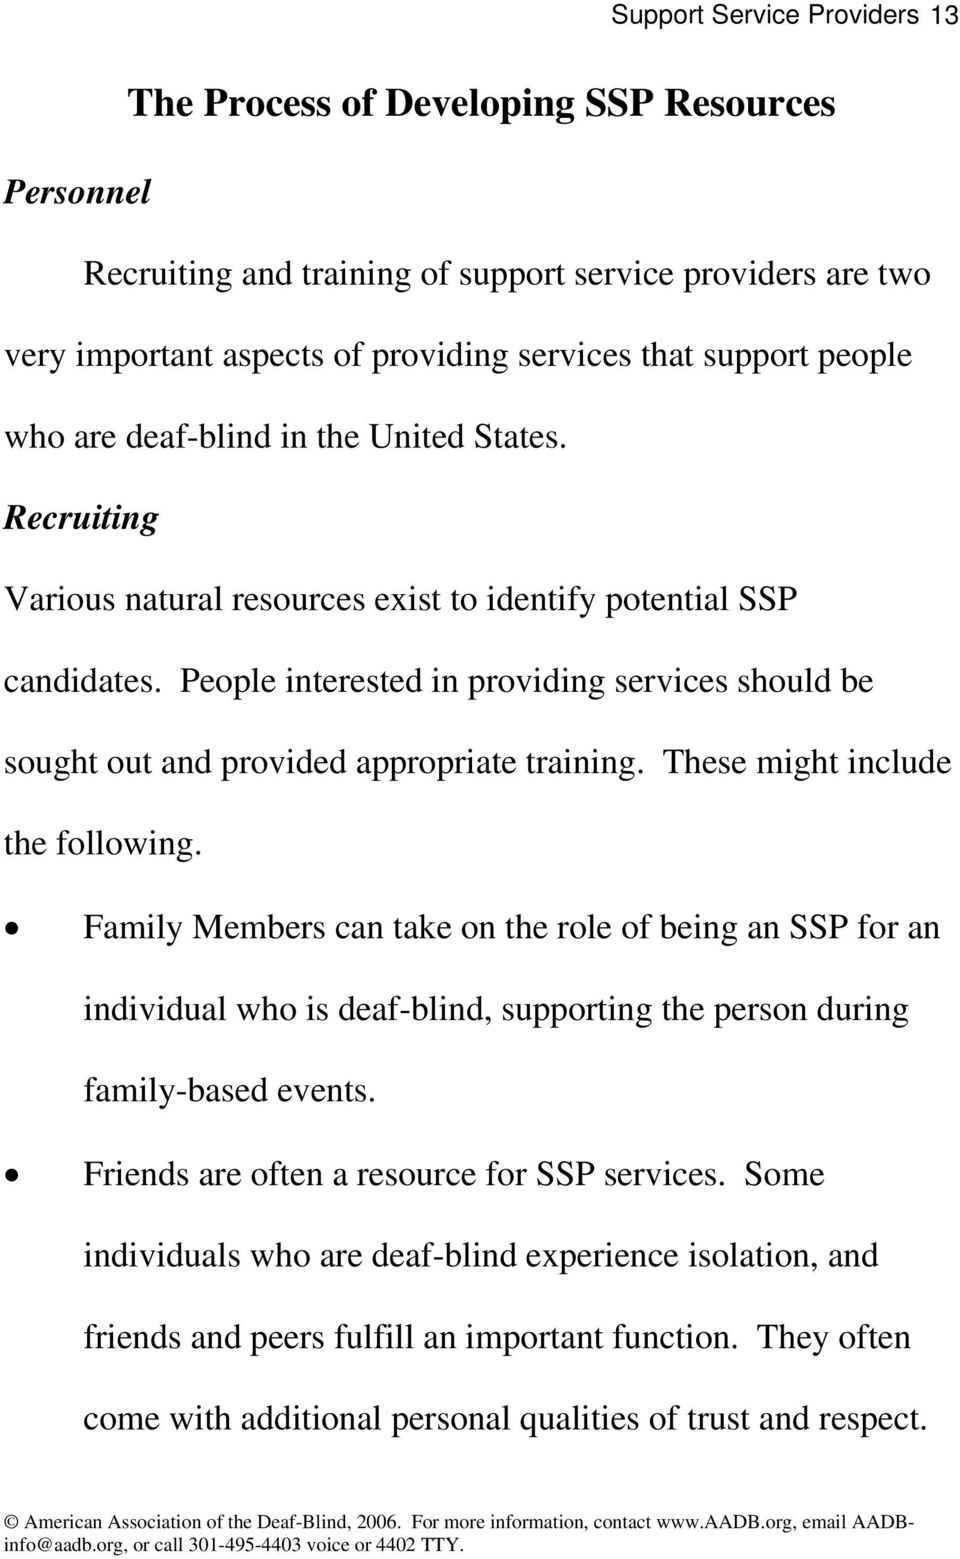 People interested in providing services should be sought out and provided appropriate training. These might include the following.